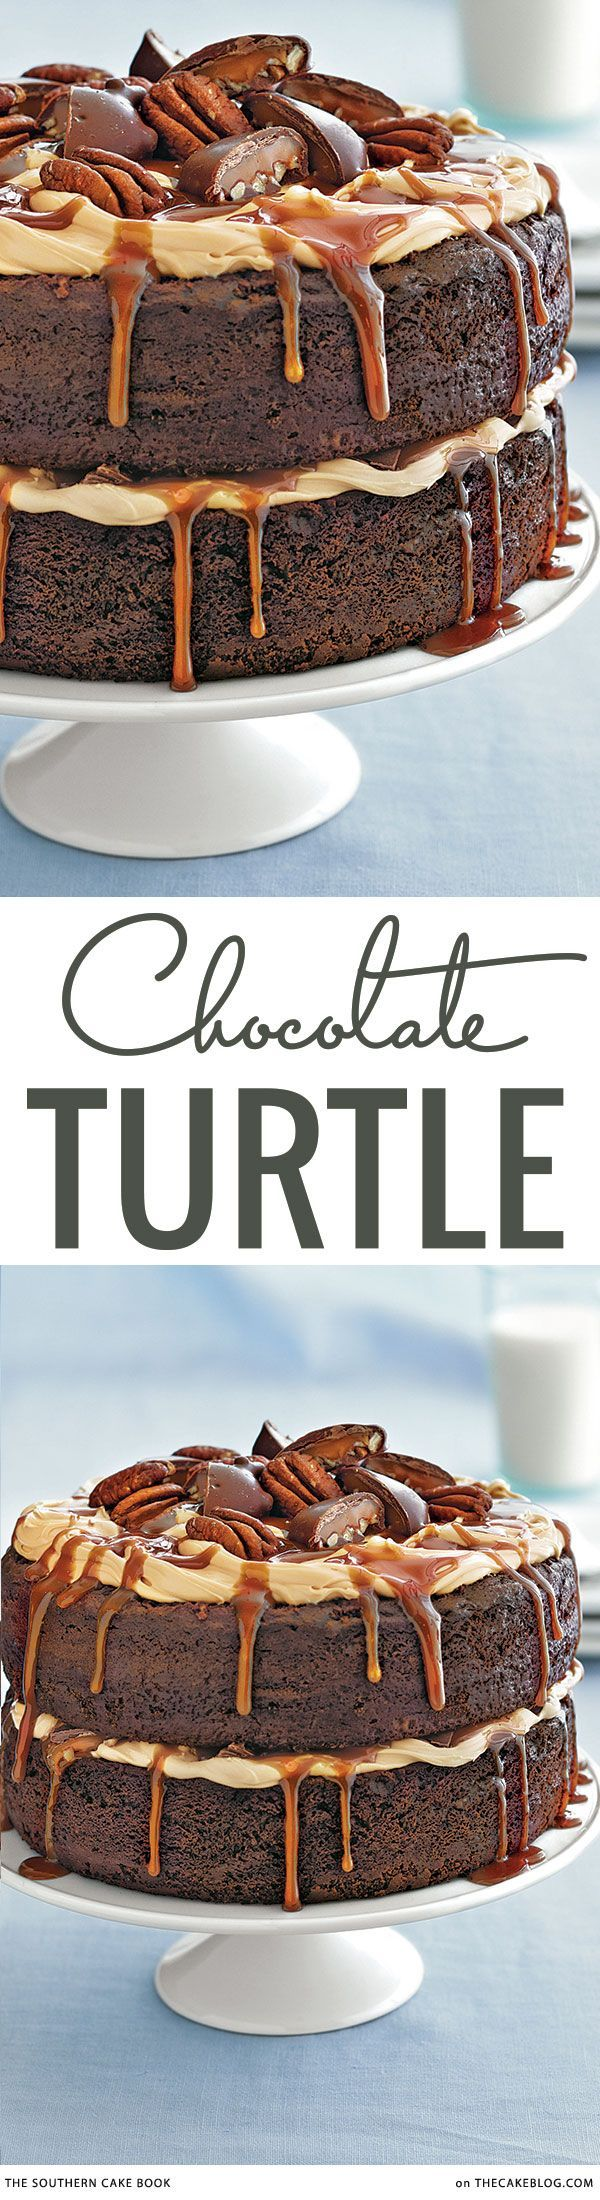 Chocolate, caramel and pecan heaven! Chocolate Turtle Cake Recipe | The Southern Cake Book on TheCakeBlog.com